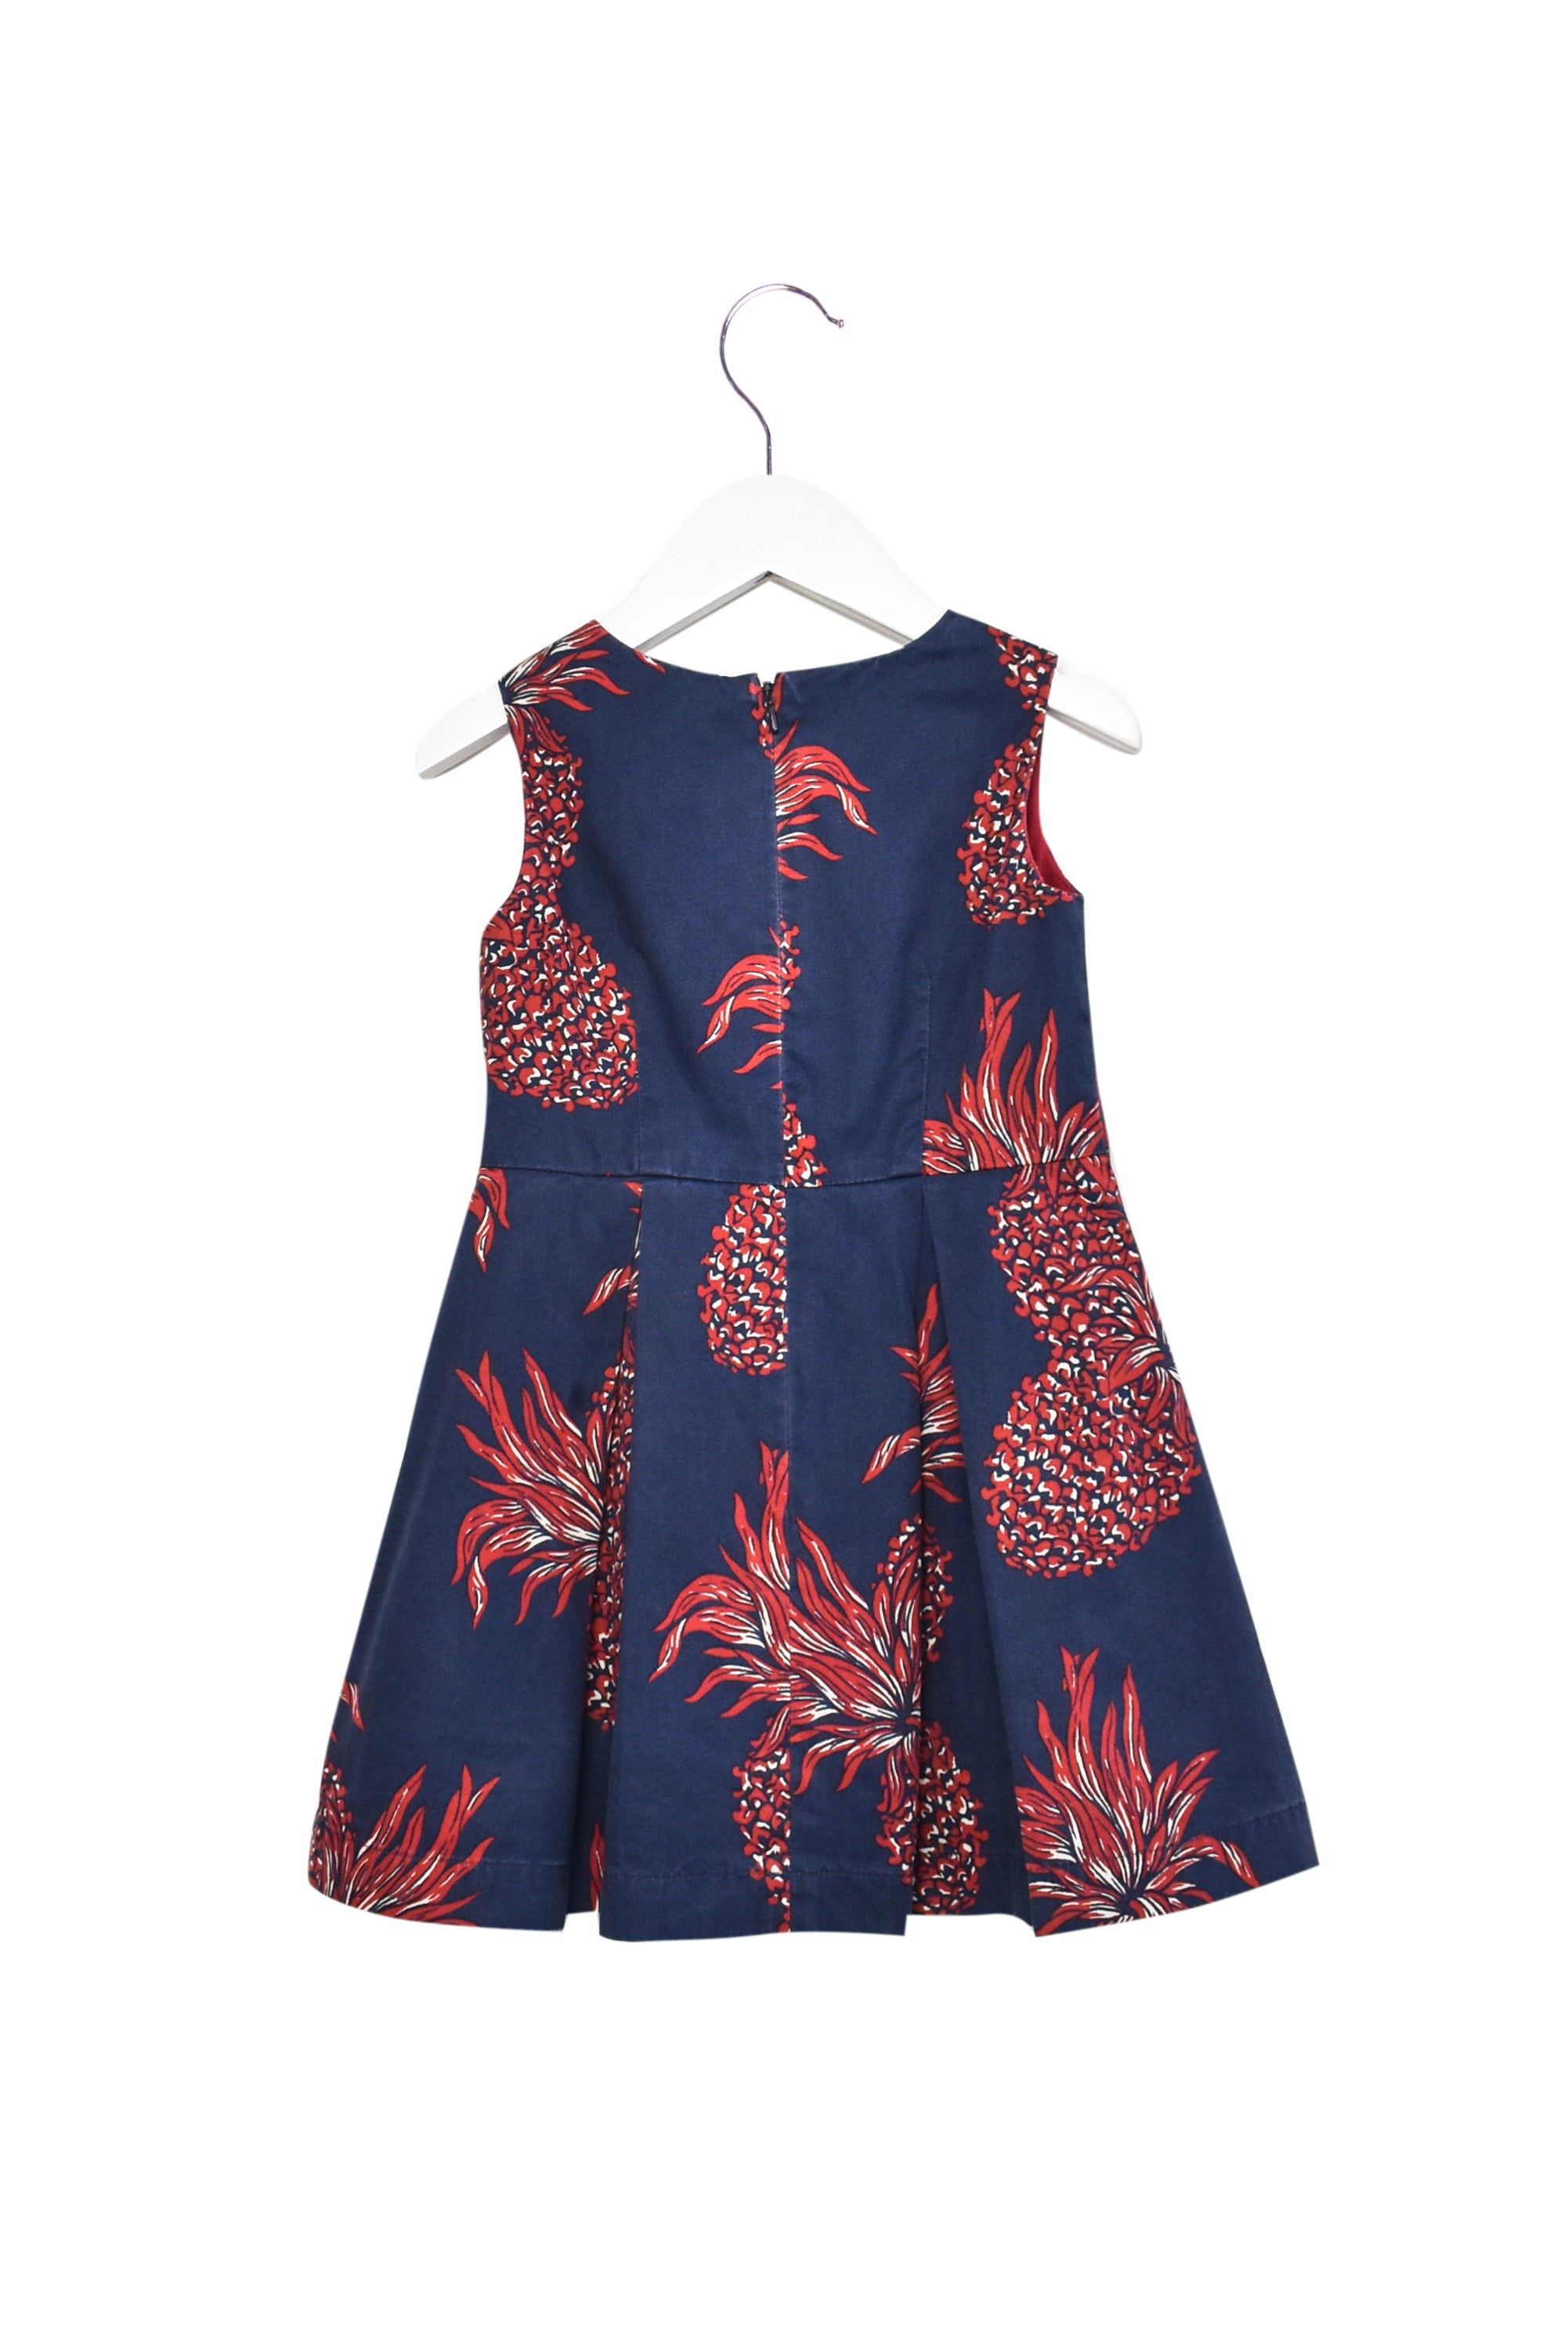 10011831 La Petite Caravane Kids~Dress 2-3T at Retykle